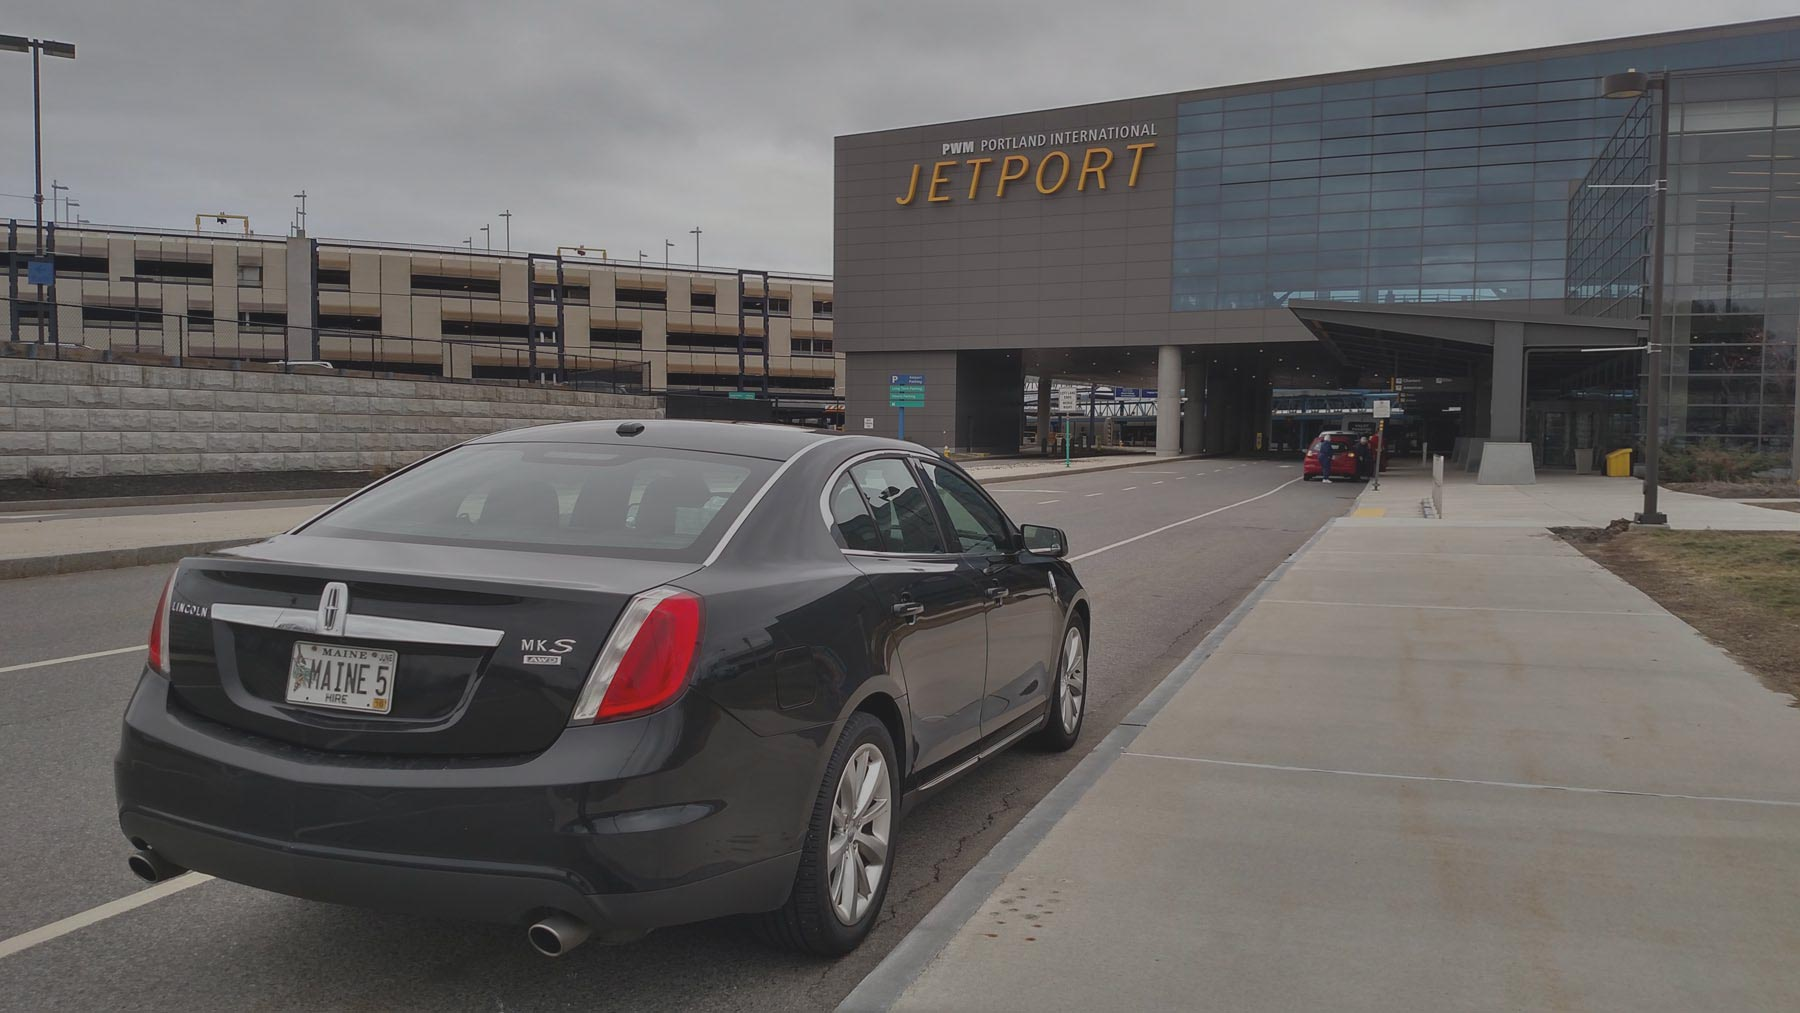 Car Services From Boston Logan Airport To Portland Maine